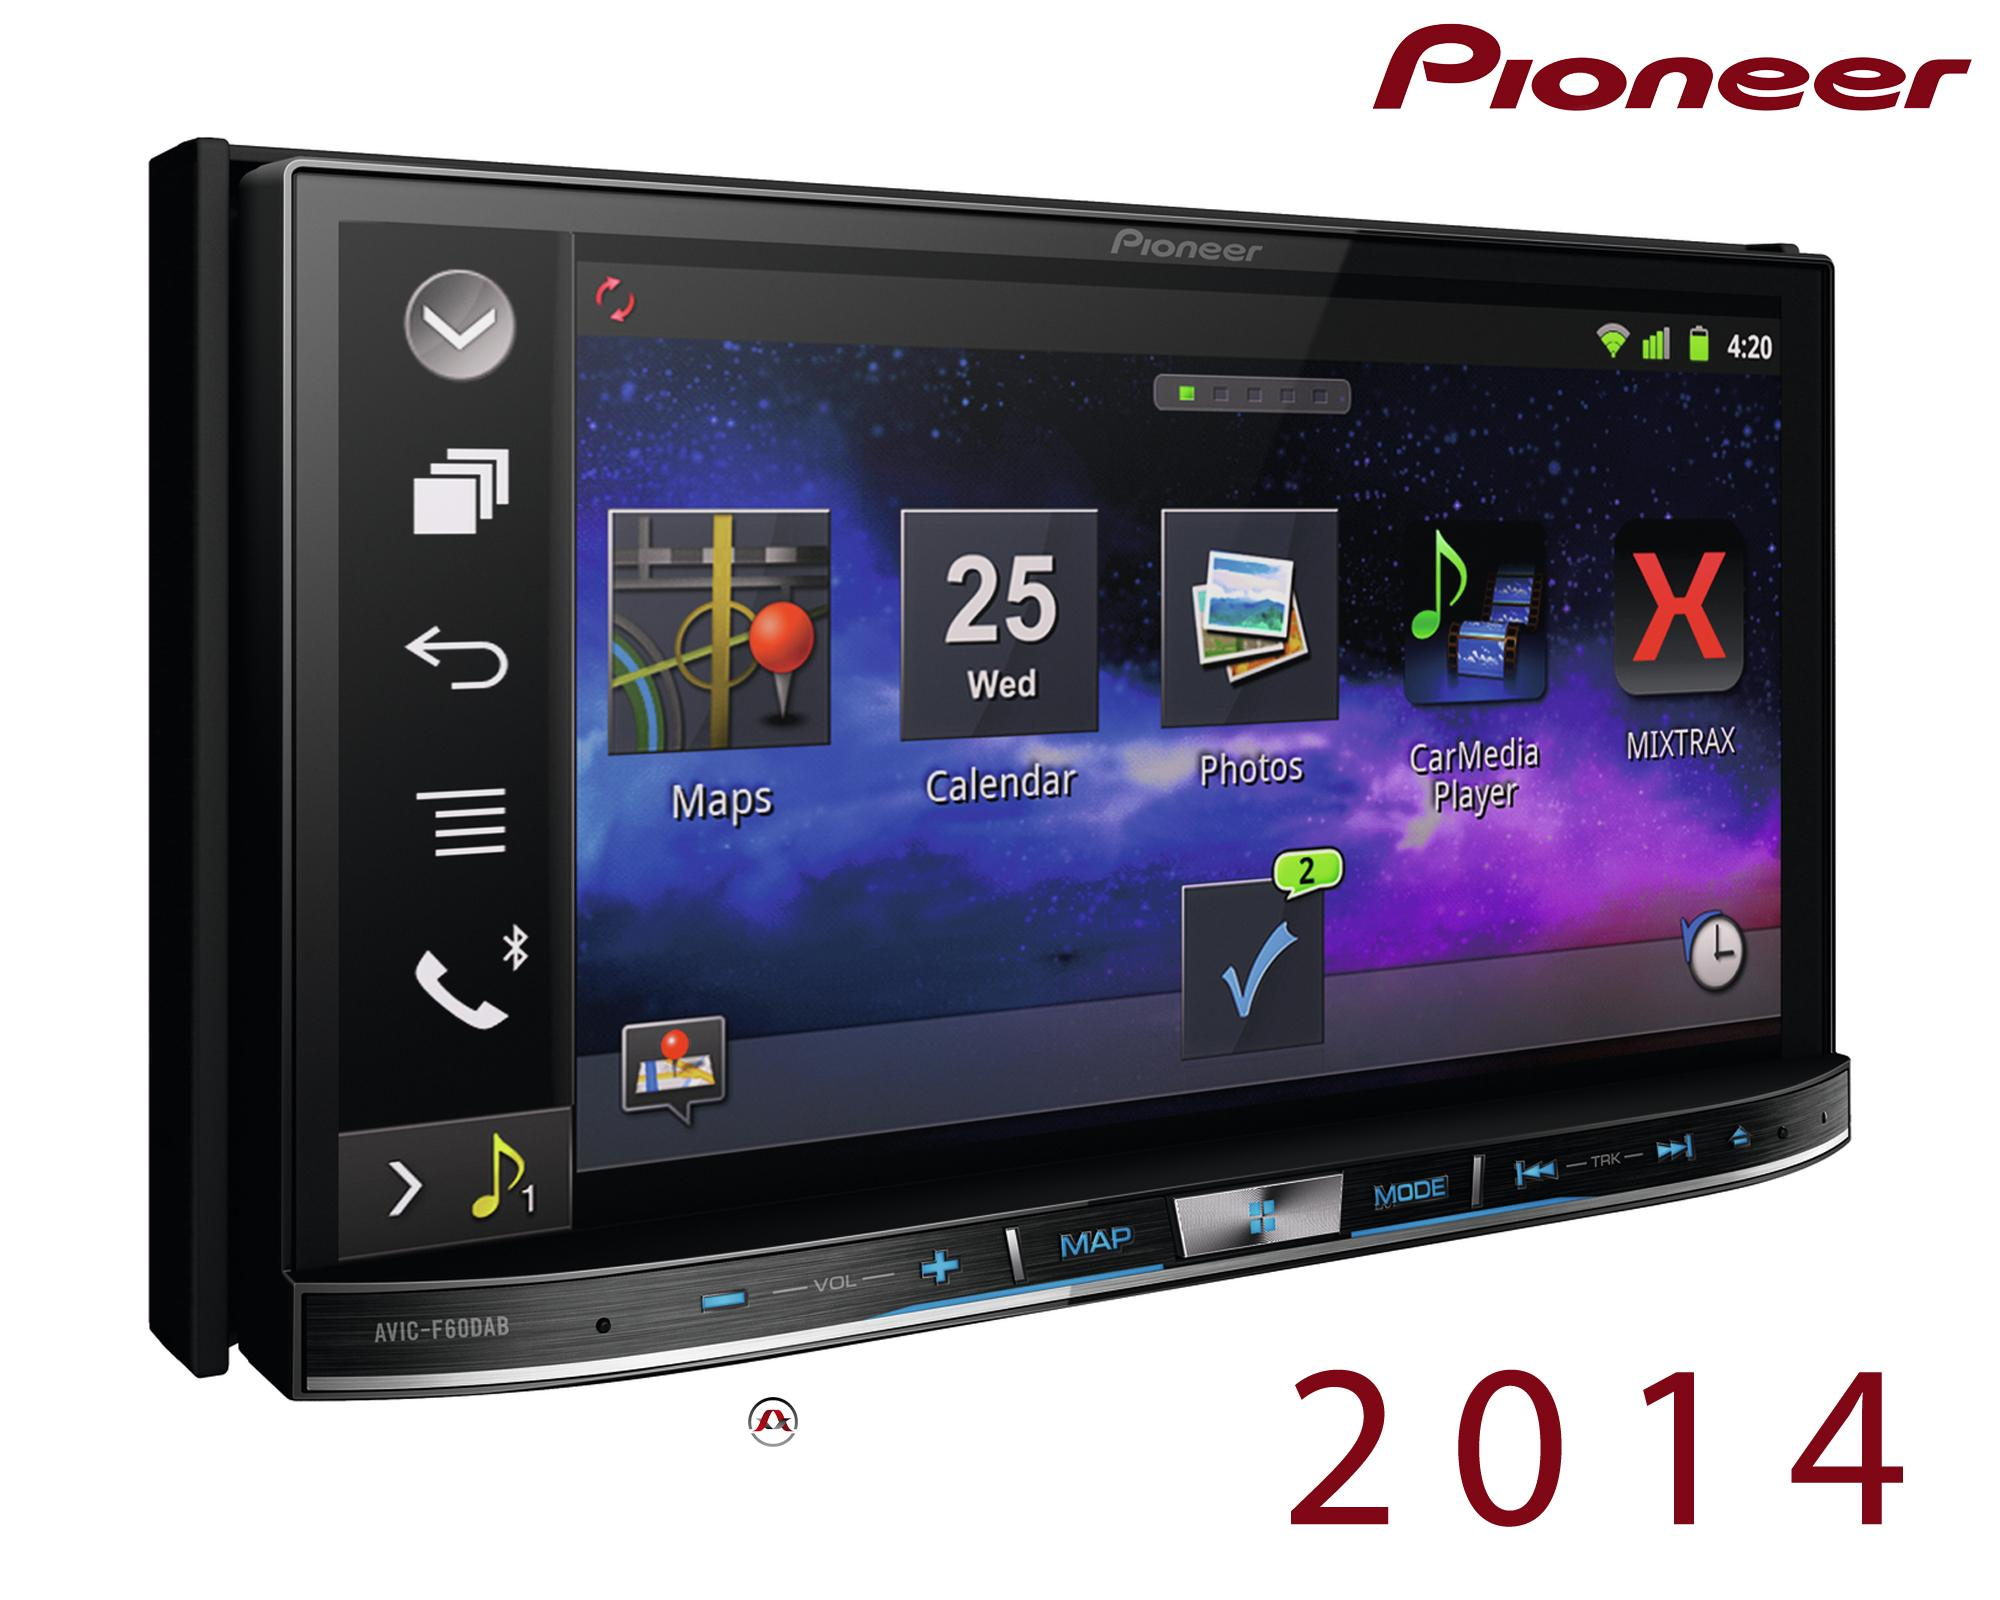 autoradio navigation avec gps pioneer avic f60dab nex 2014. Black Bedroom Furniture Sets. Home Design Ideas